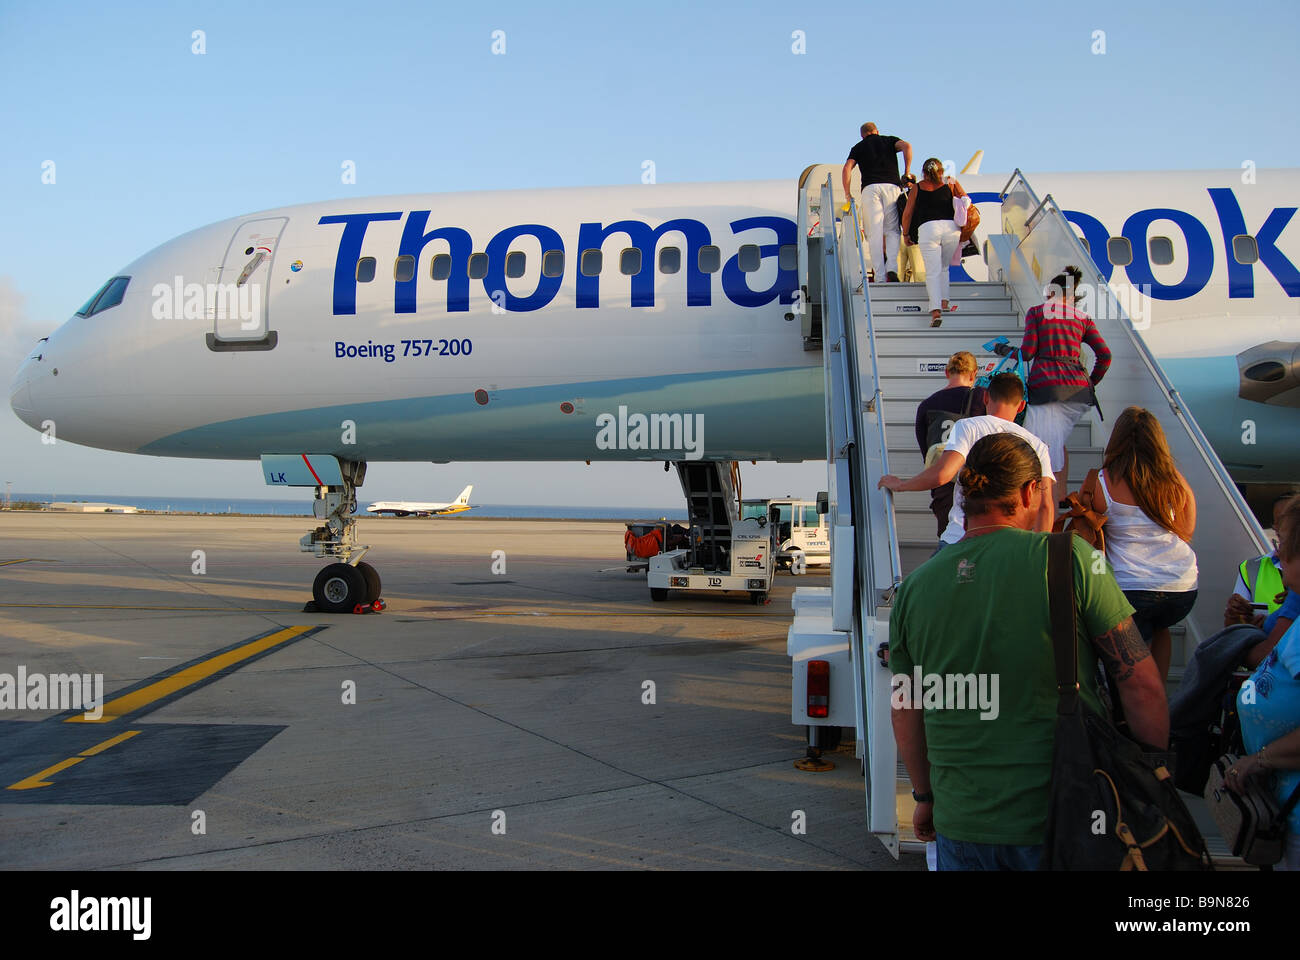 Passengers boarding Thomas Cook Boeing 757-200, Arrecife Airport, Arrecife, Lanzarote, Canary Islands, Spain - Stock Image